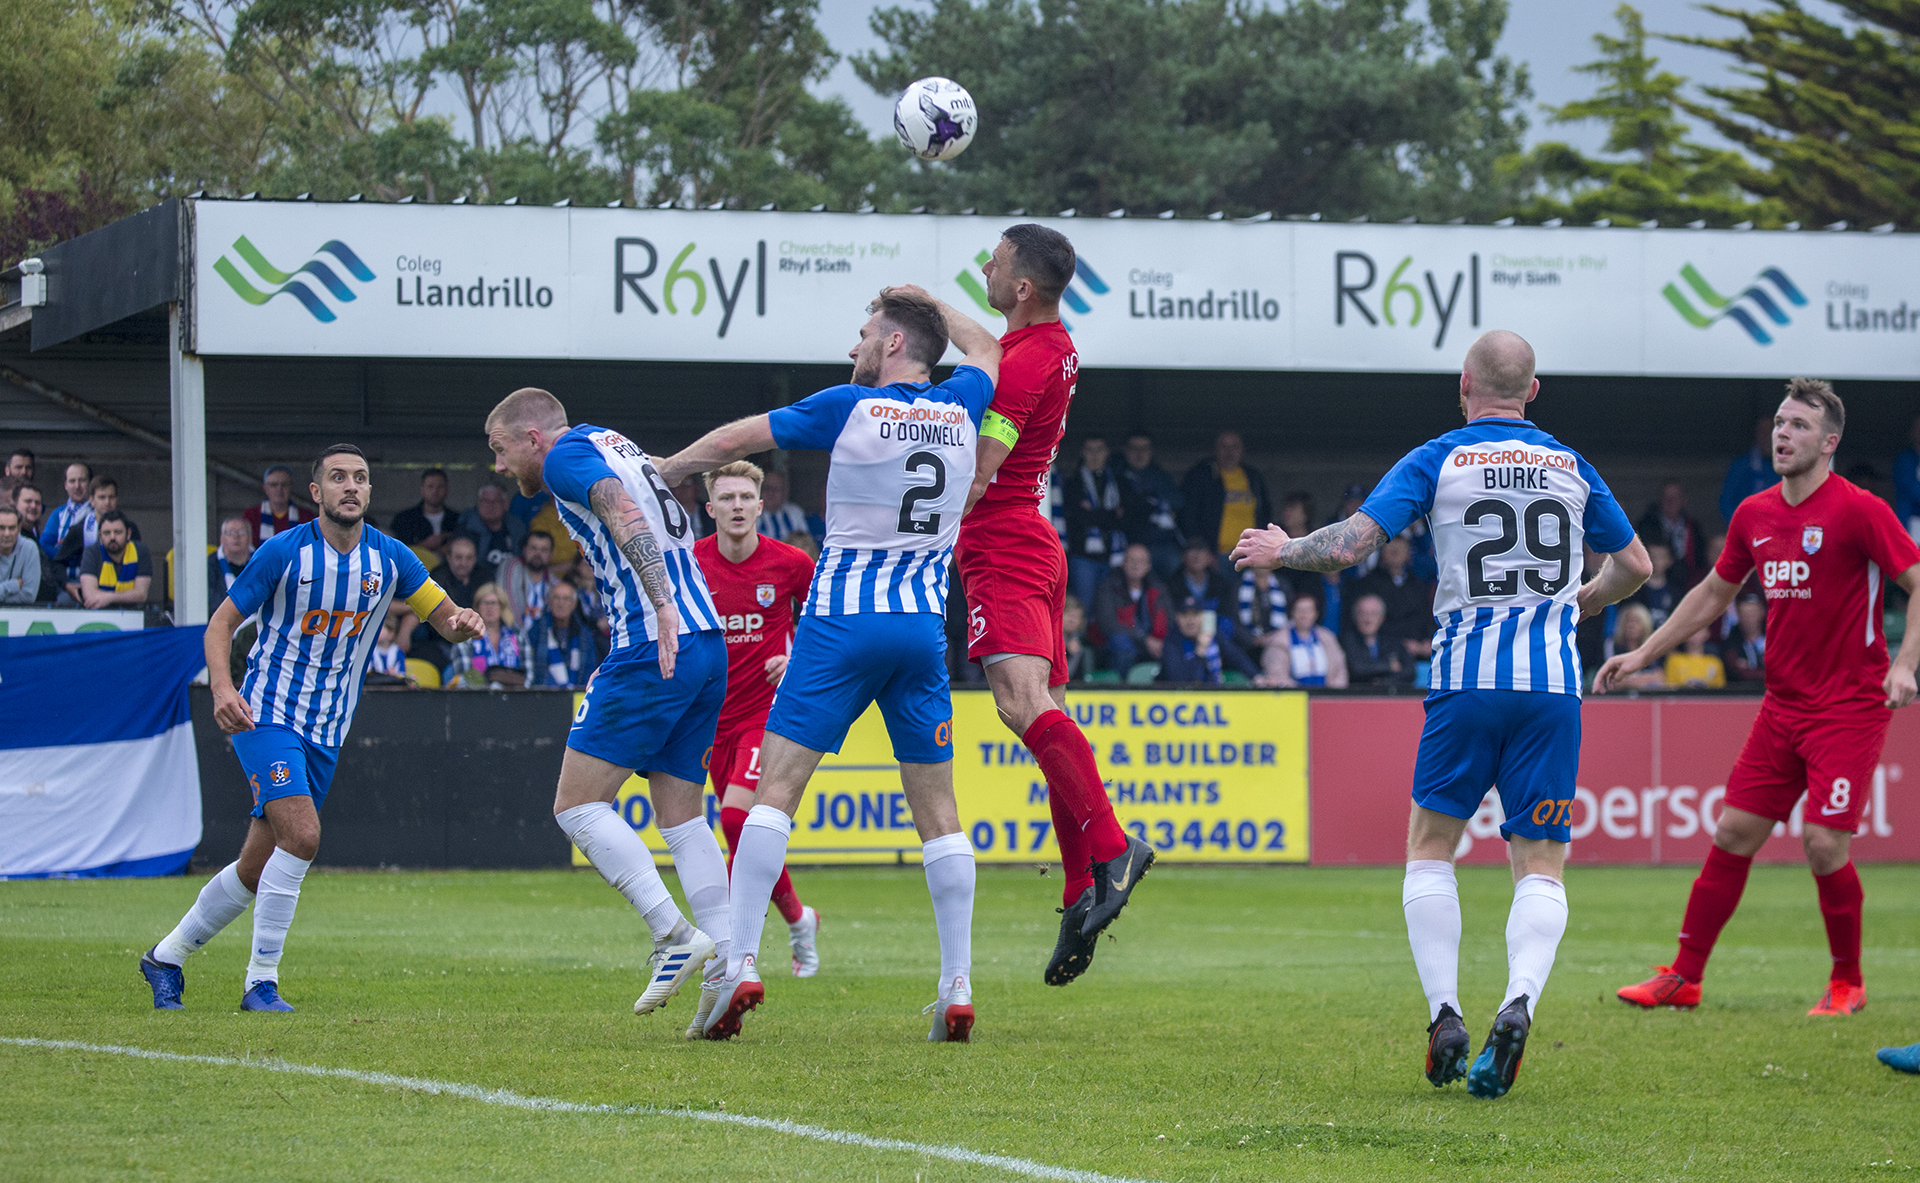 George Horan challenges for a header in the first half | © NCM Media